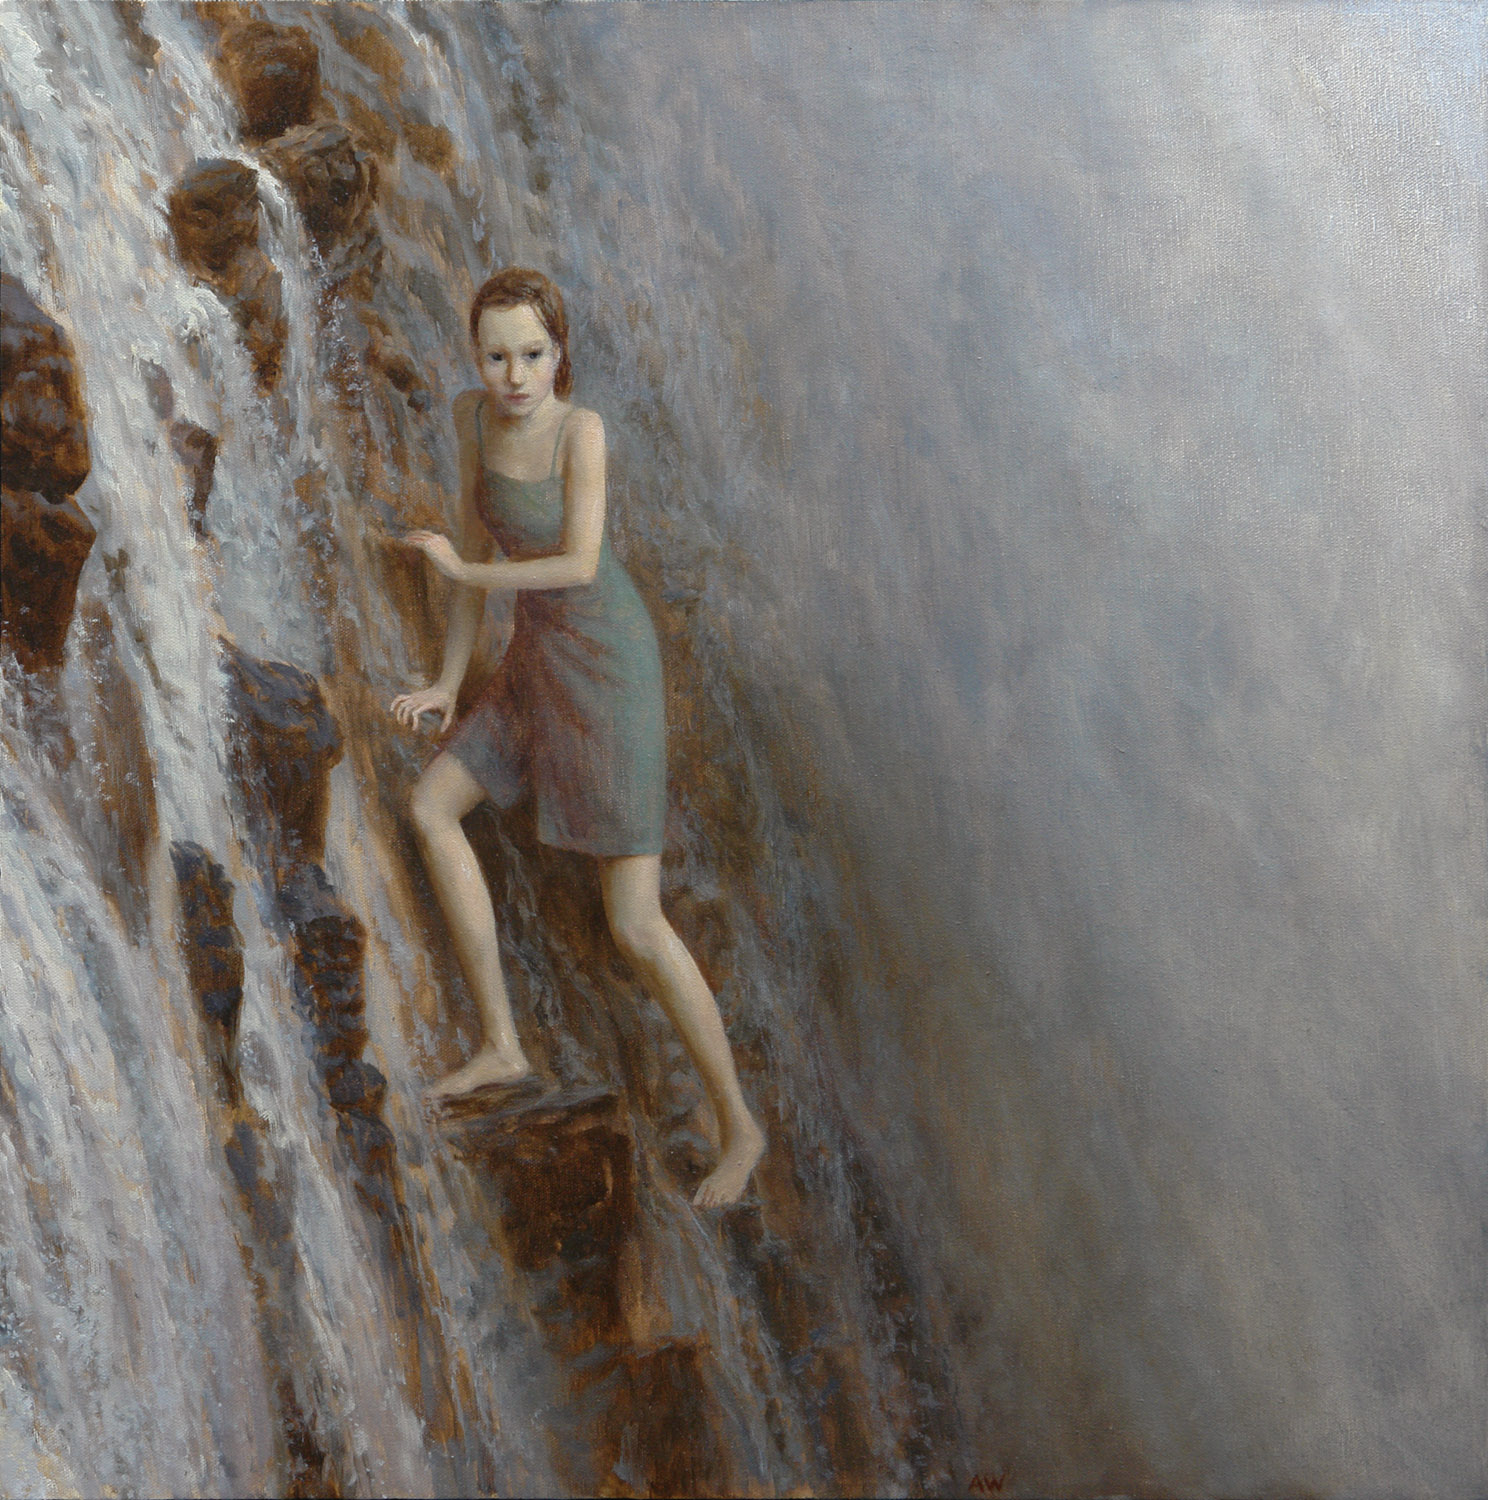 The Falls , oil on canvas, 24 x 24 in, 2005